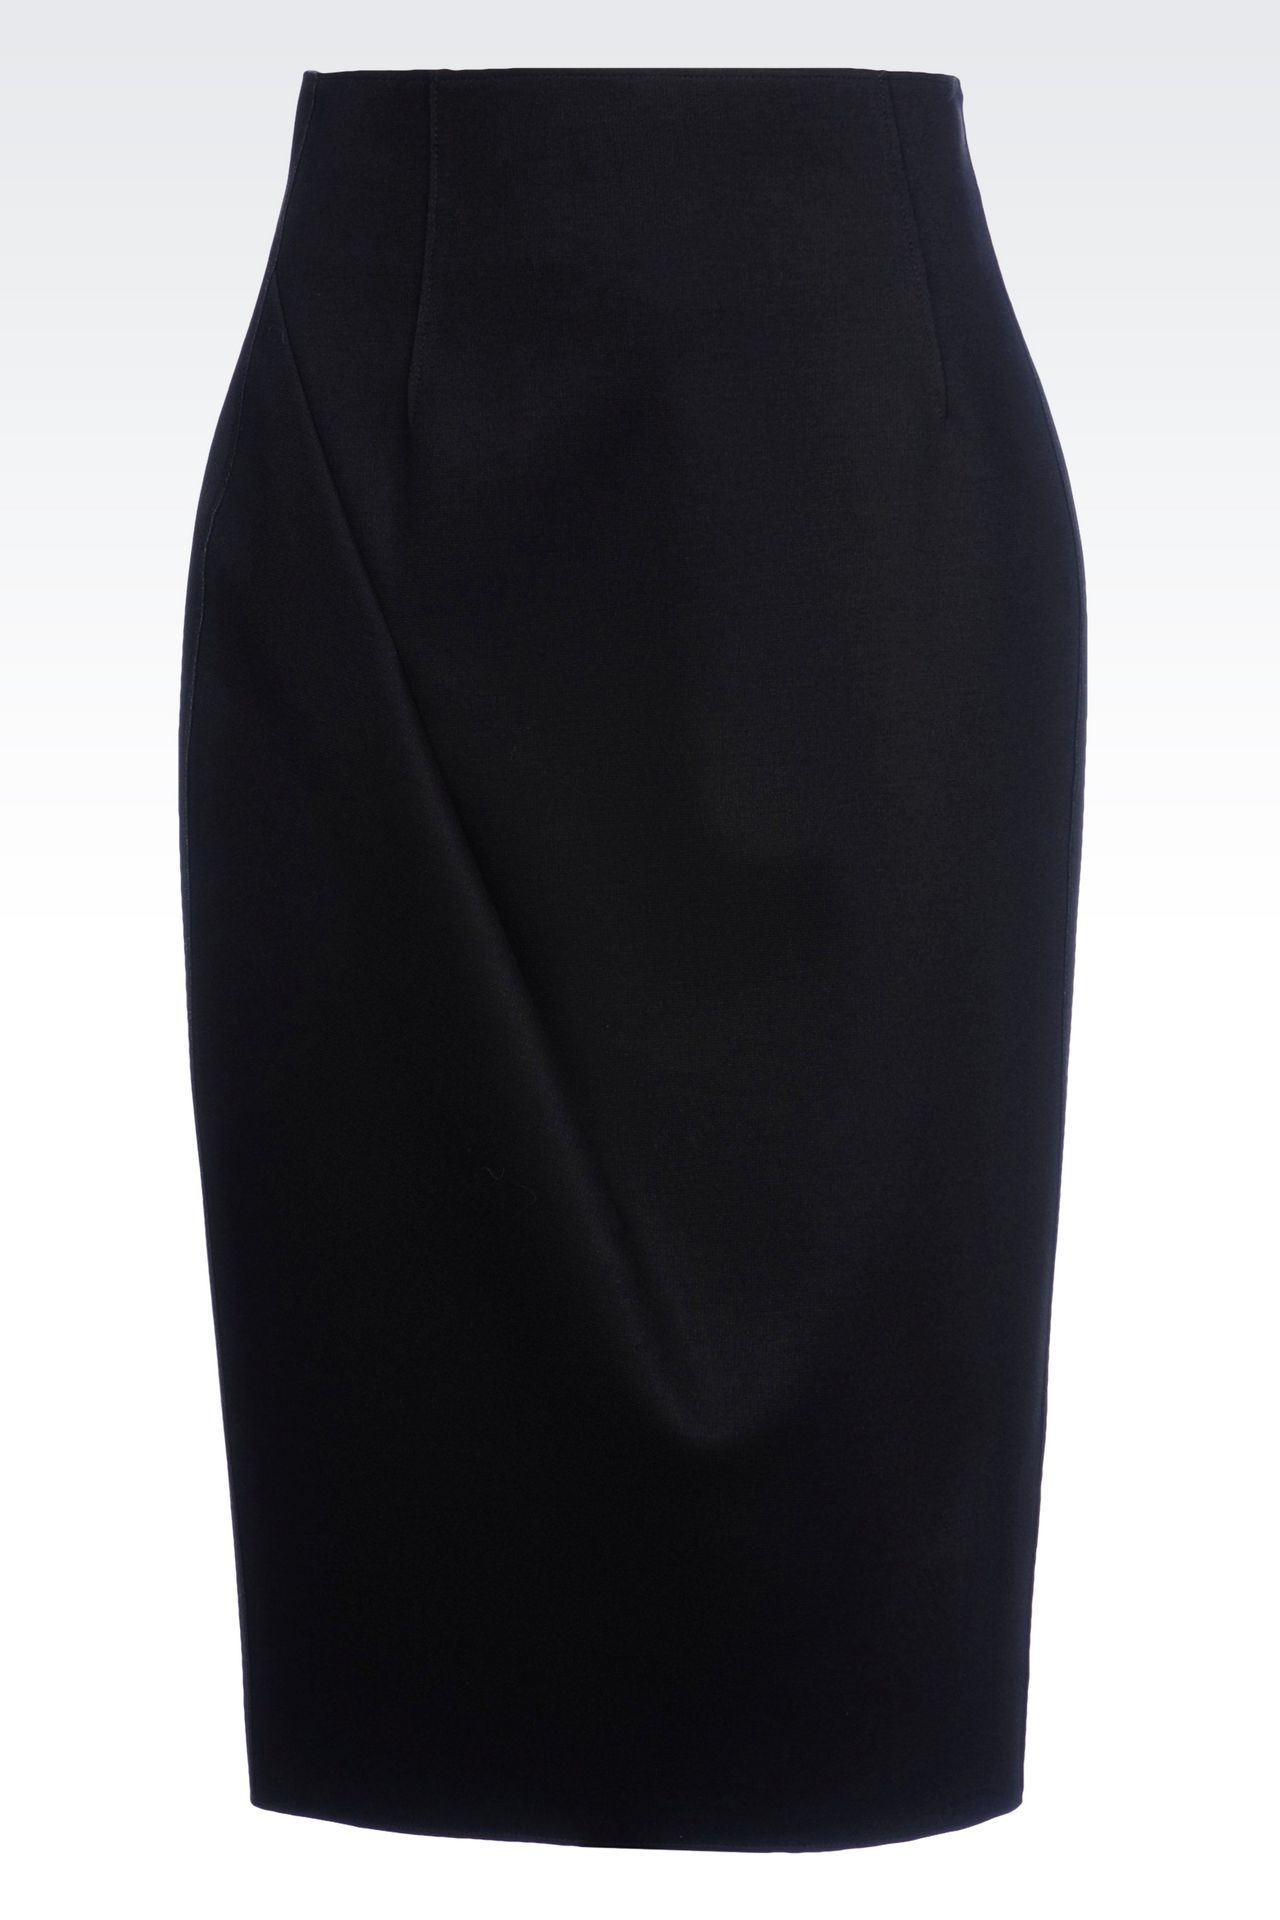 PENCIL SKIRT IN NEOPRENE: Knee length skirts Women by Armani - 0